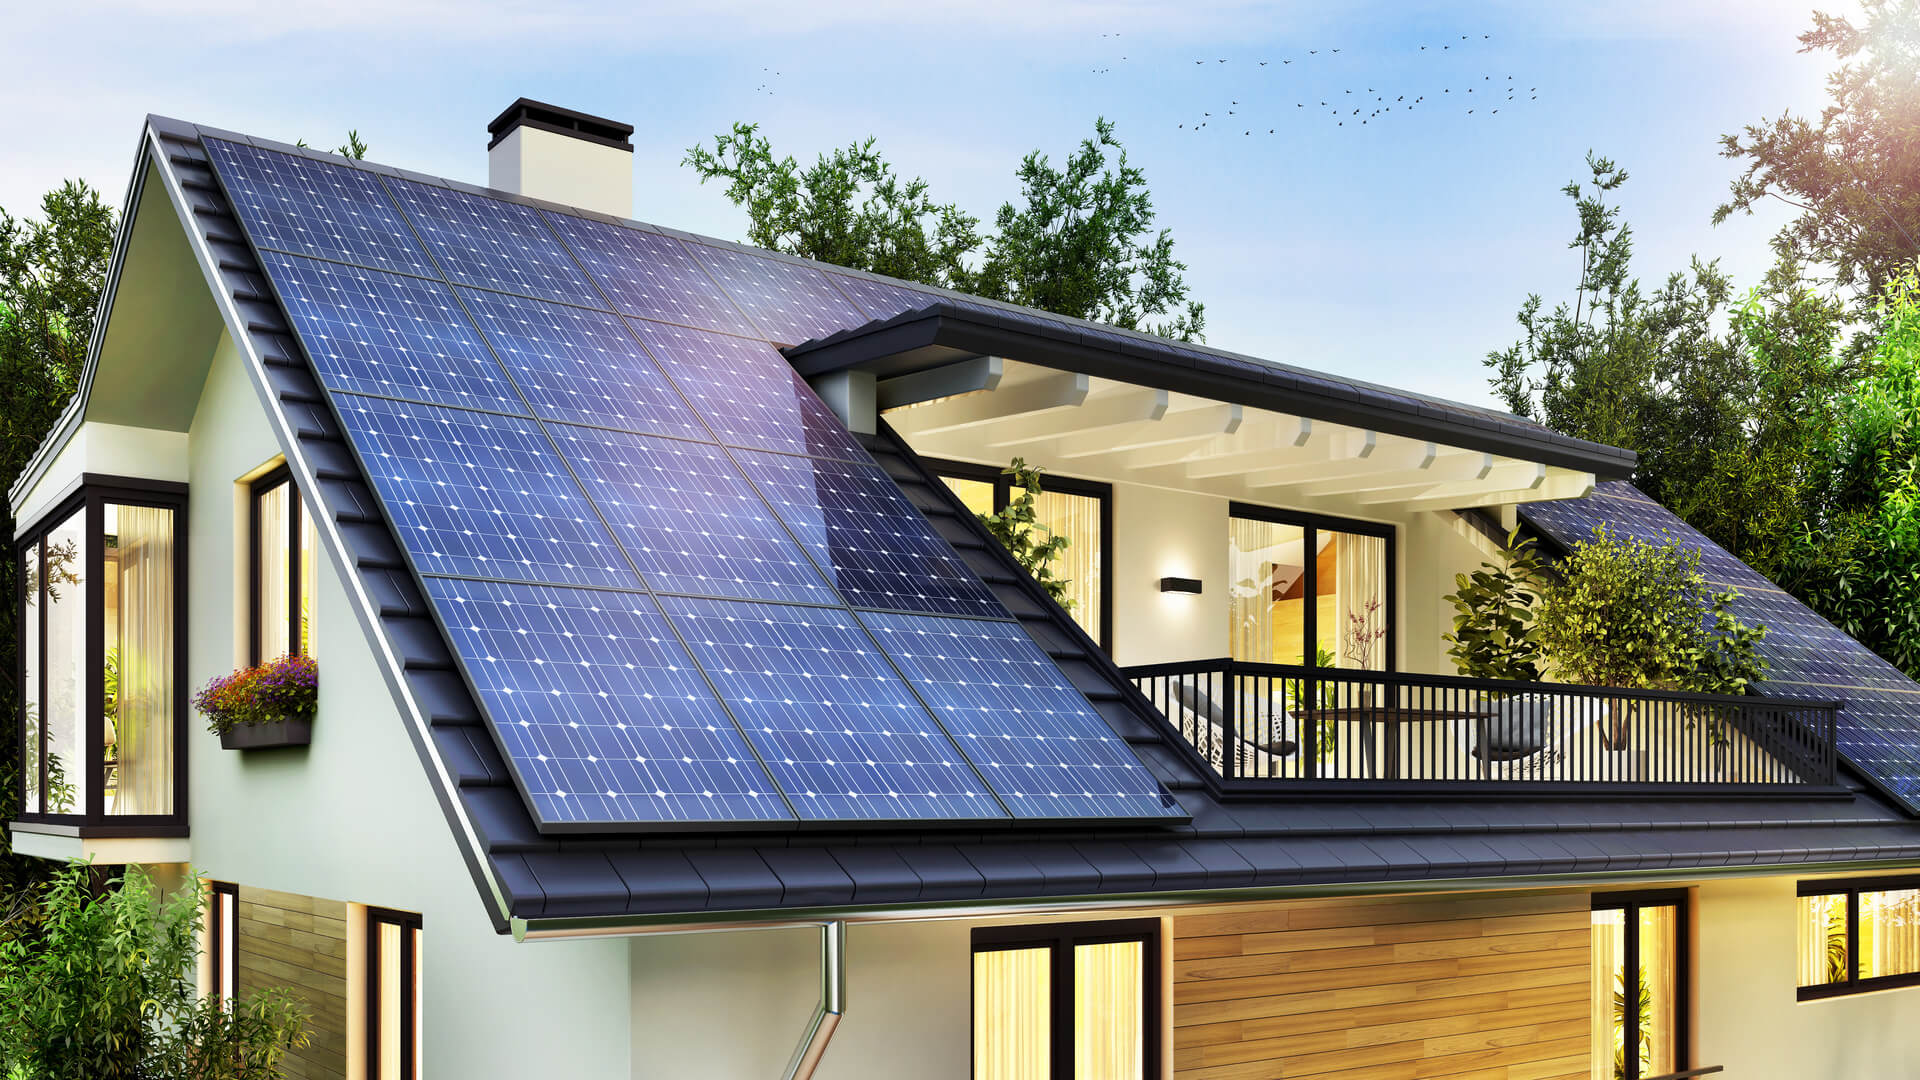 11 Benefits For Installing A Home Solar System - Build Magazine